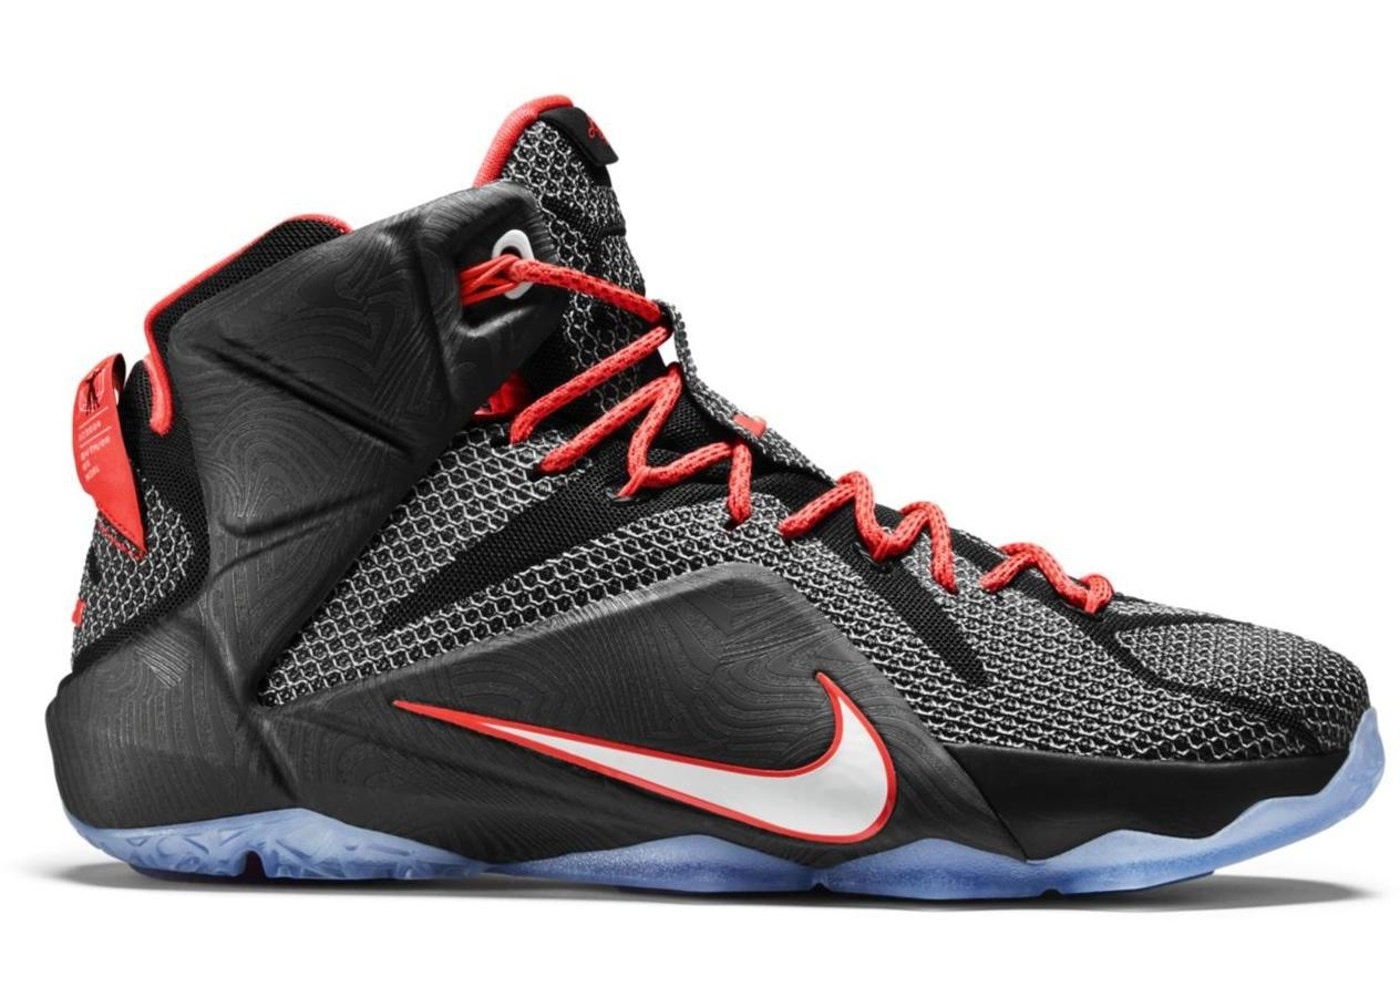 3beb79f3a645 LeBron 12 Court Vision - 684593-016